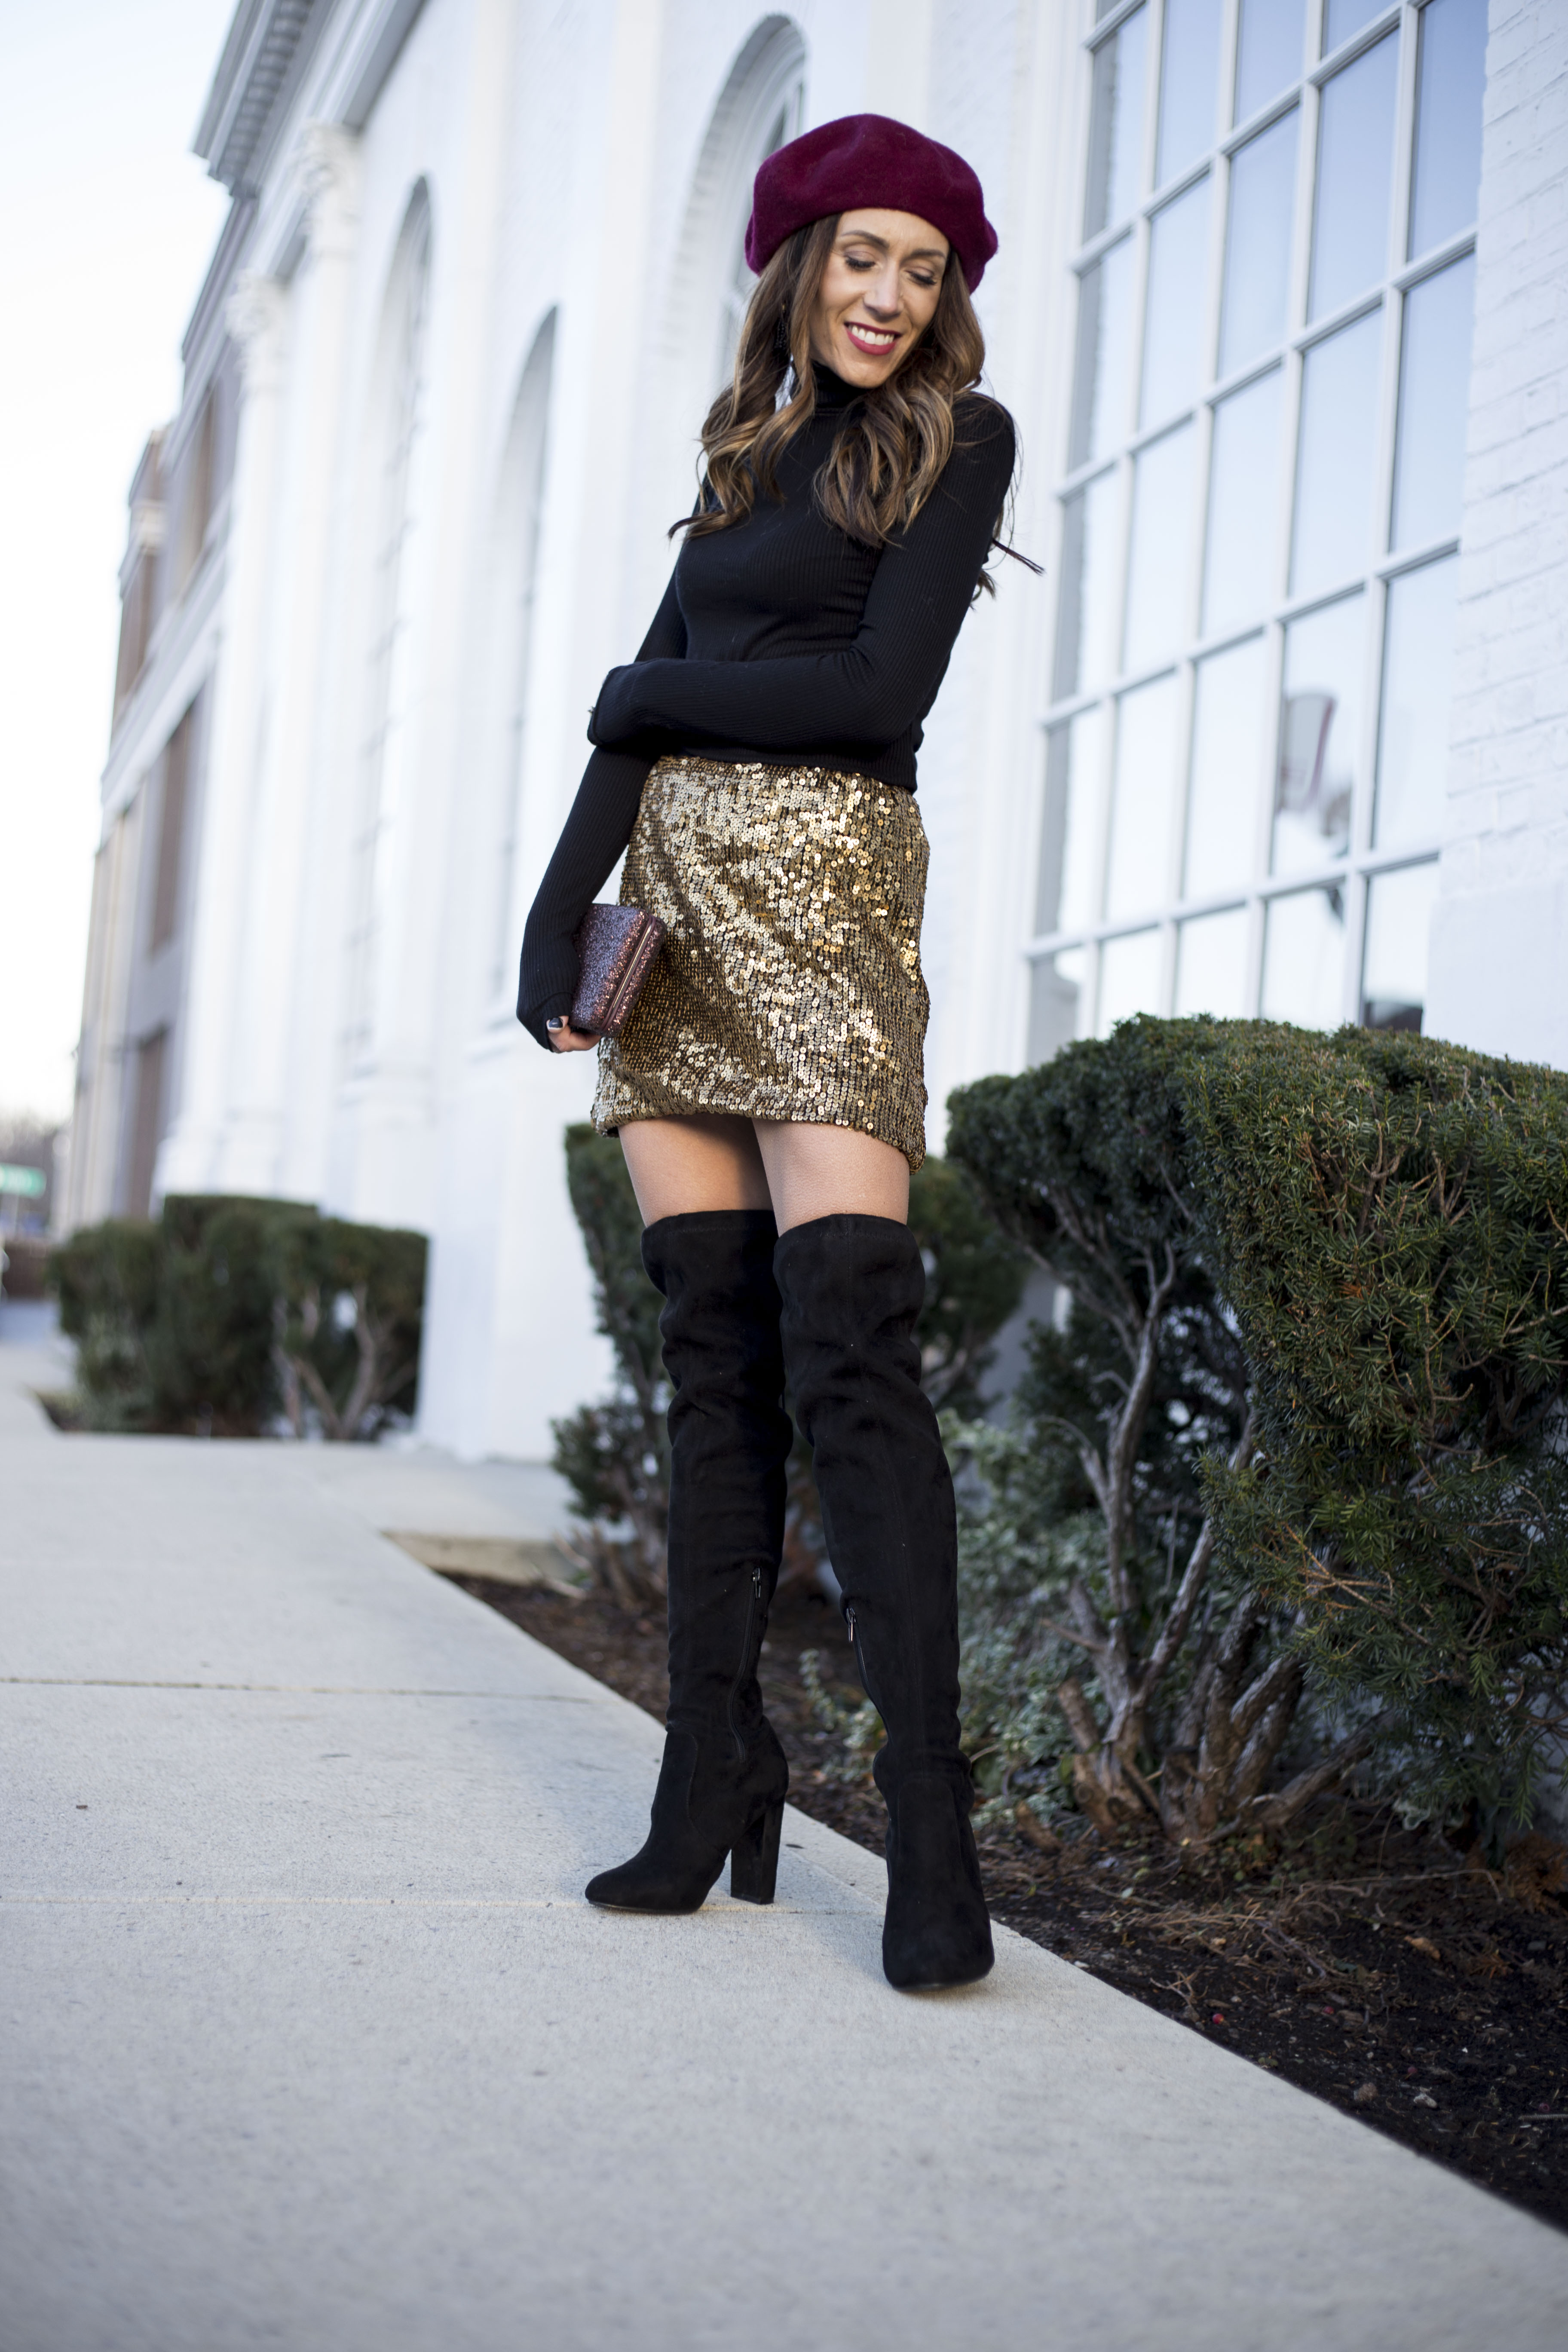 Sequin mini skirt for the Holidays by Boston fashion blogger Living Life Pretty